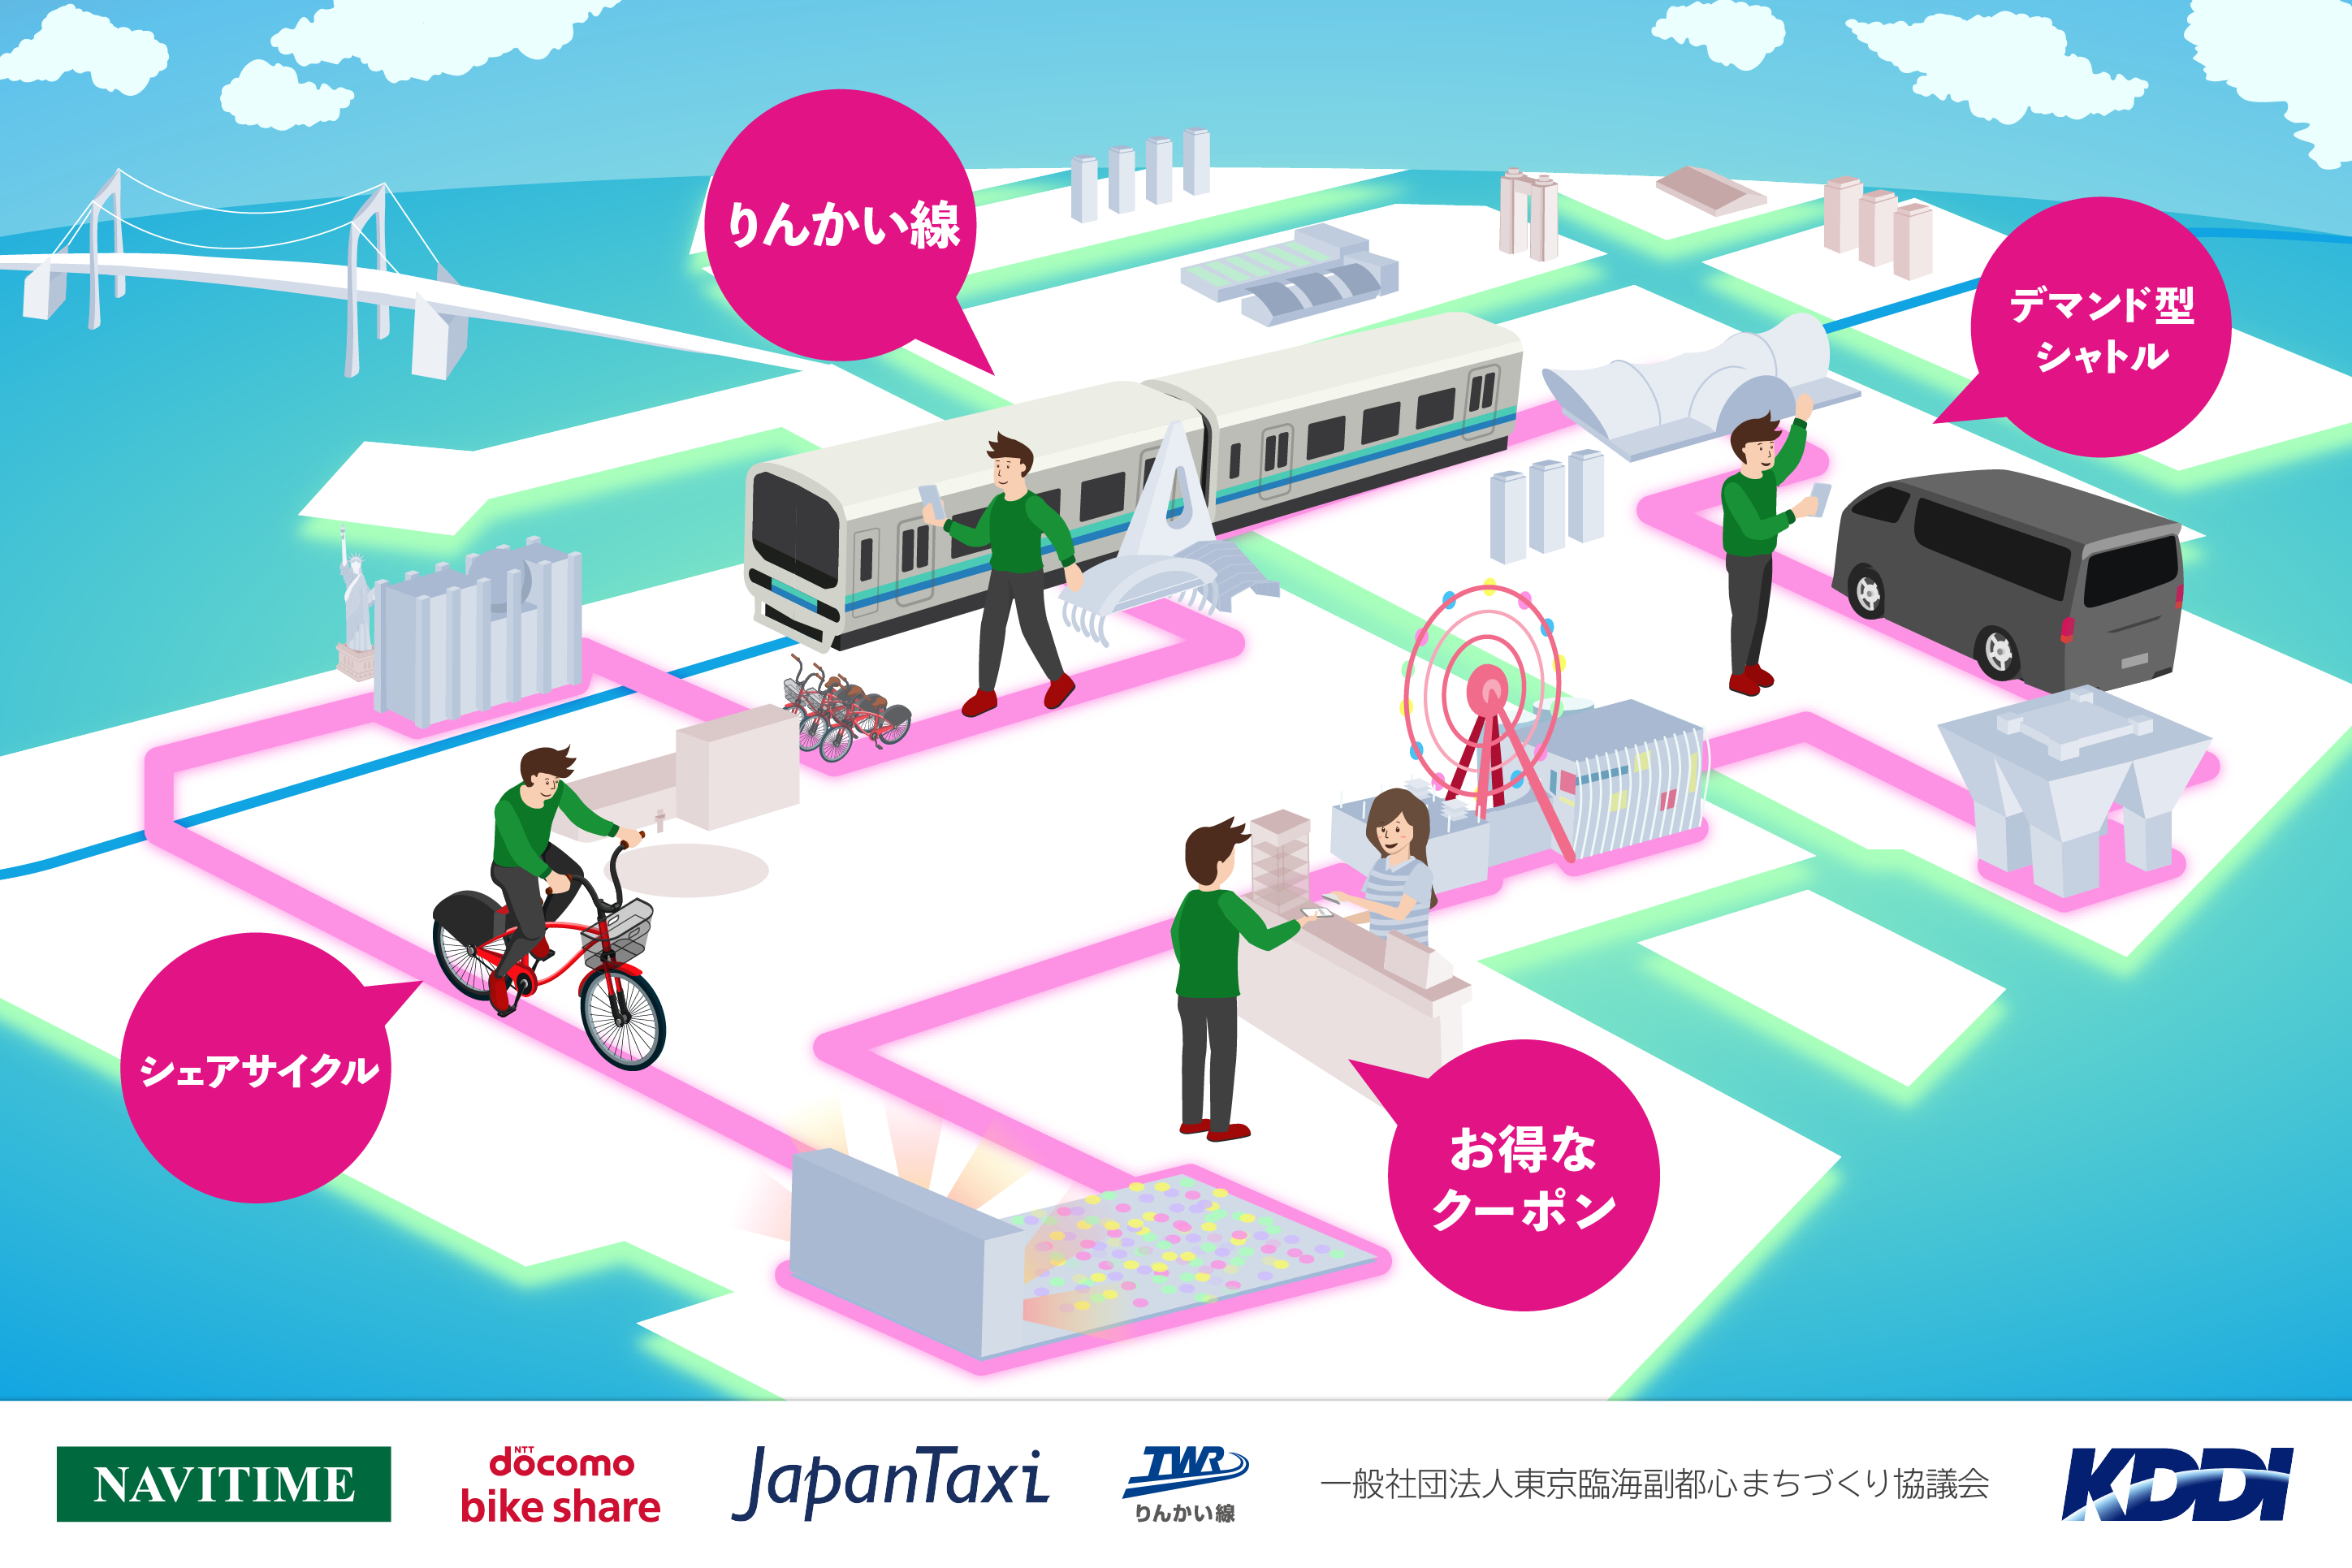 http://corporate.navitime.co.jp/topics/18be3a0bcfc47ed5af2c6bbb0b23660ce0c32d88.png